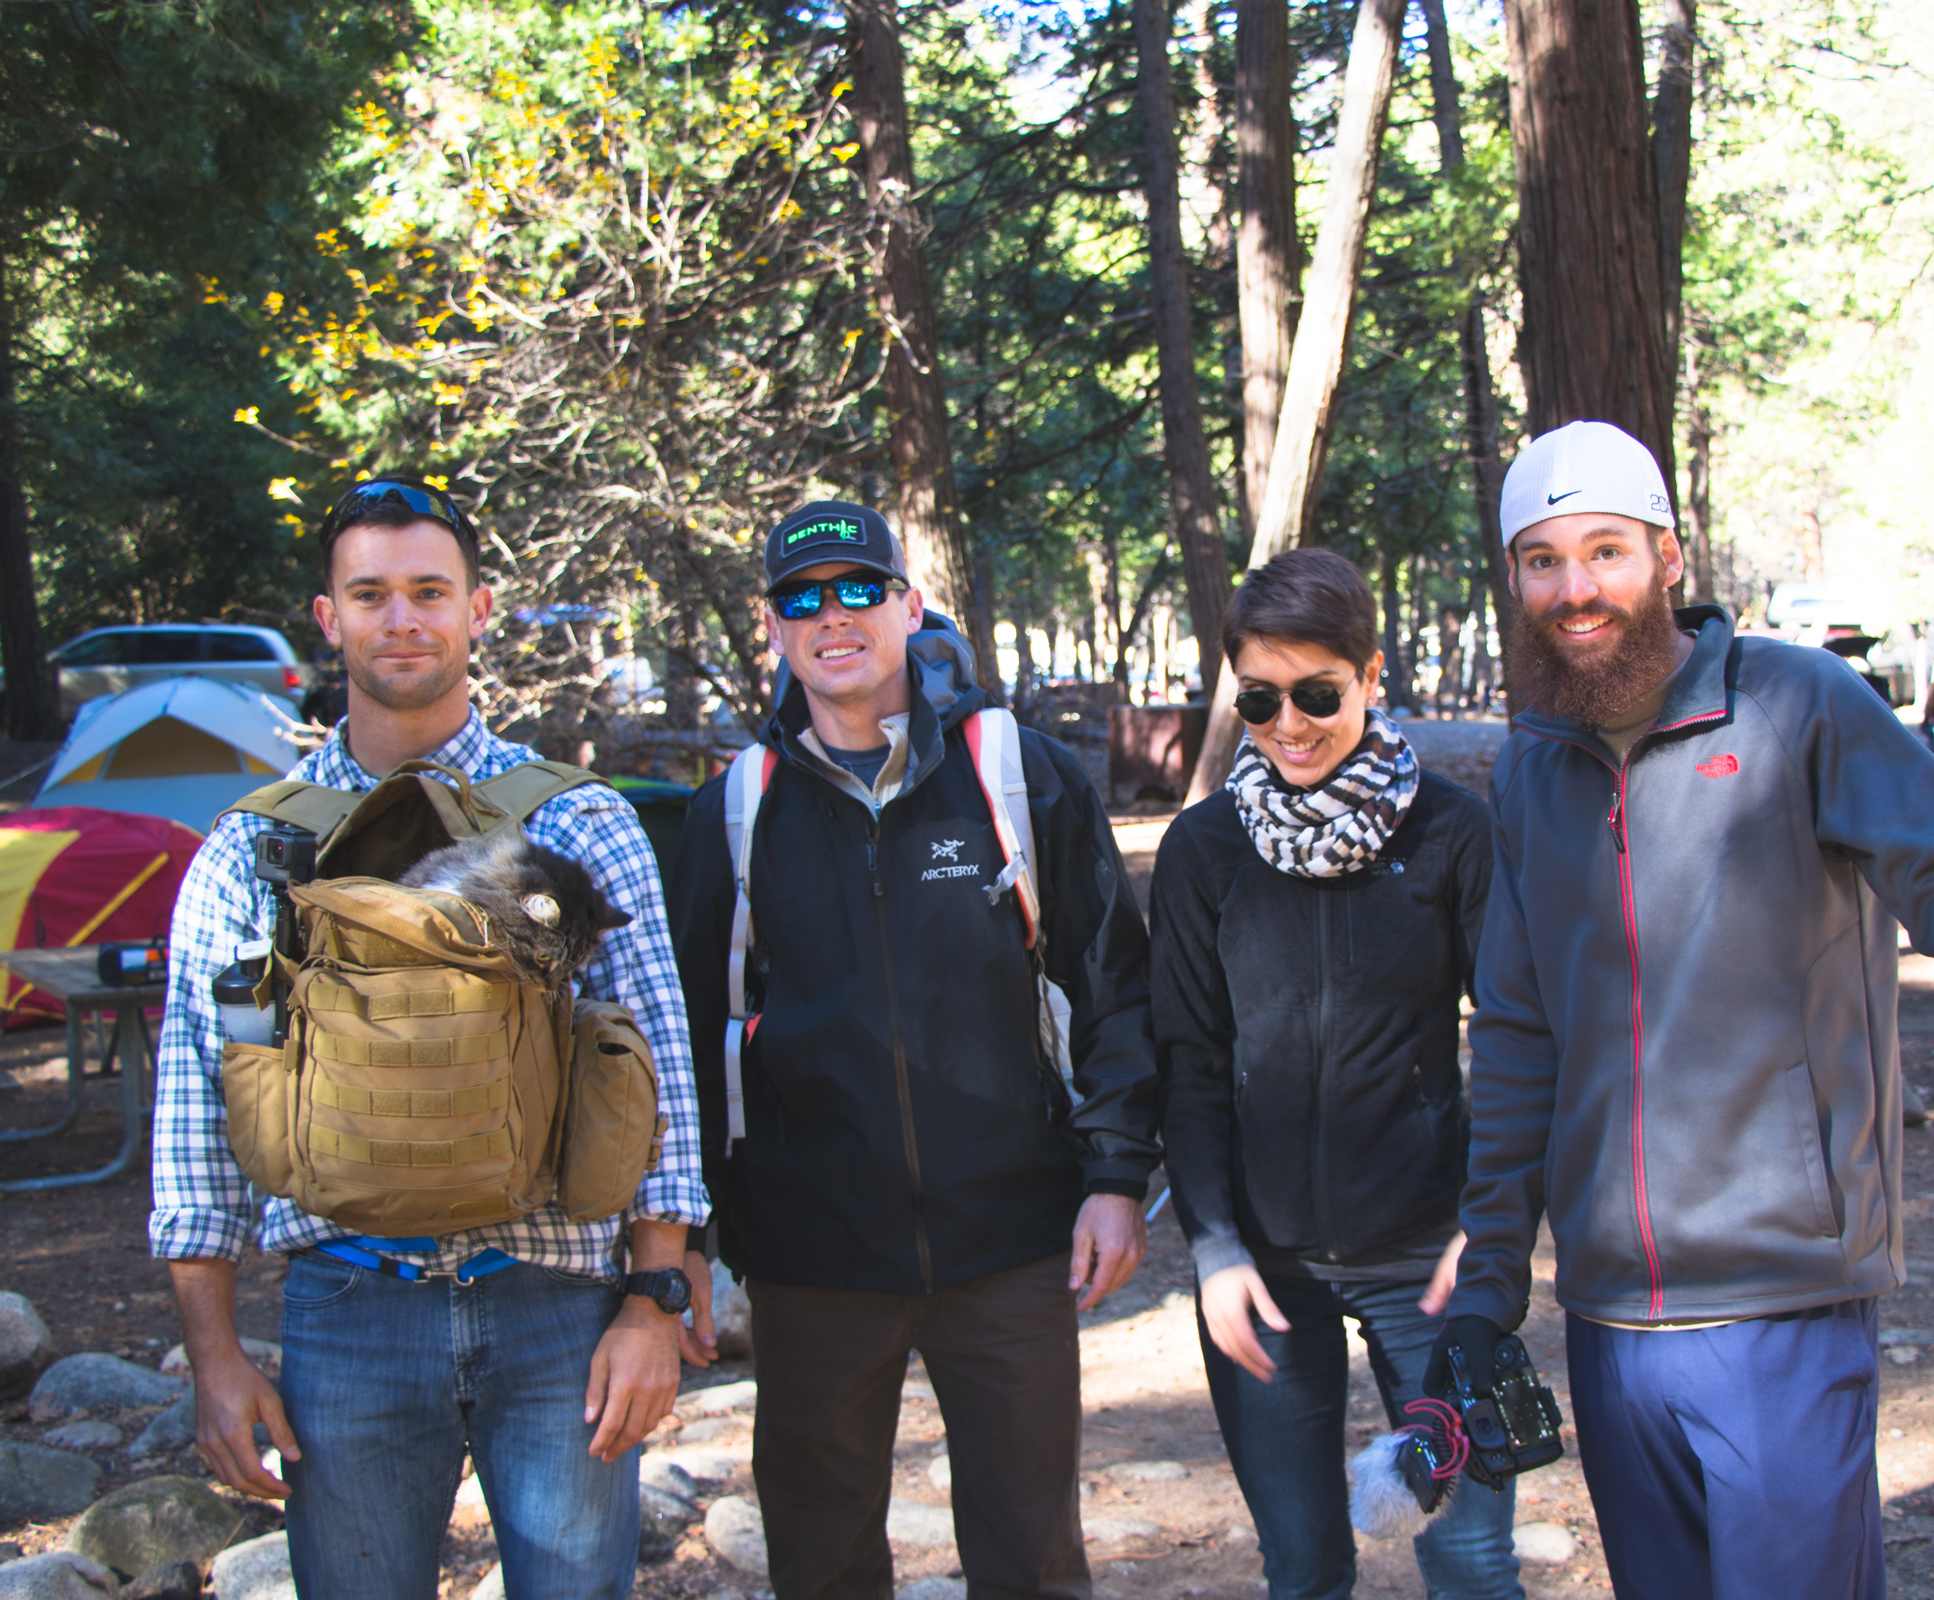 Camping in Yosemite enables awesome amounts of convenience. Here we are, shortly after waking up, ready to hit the trails with very little preparation or wasted time!